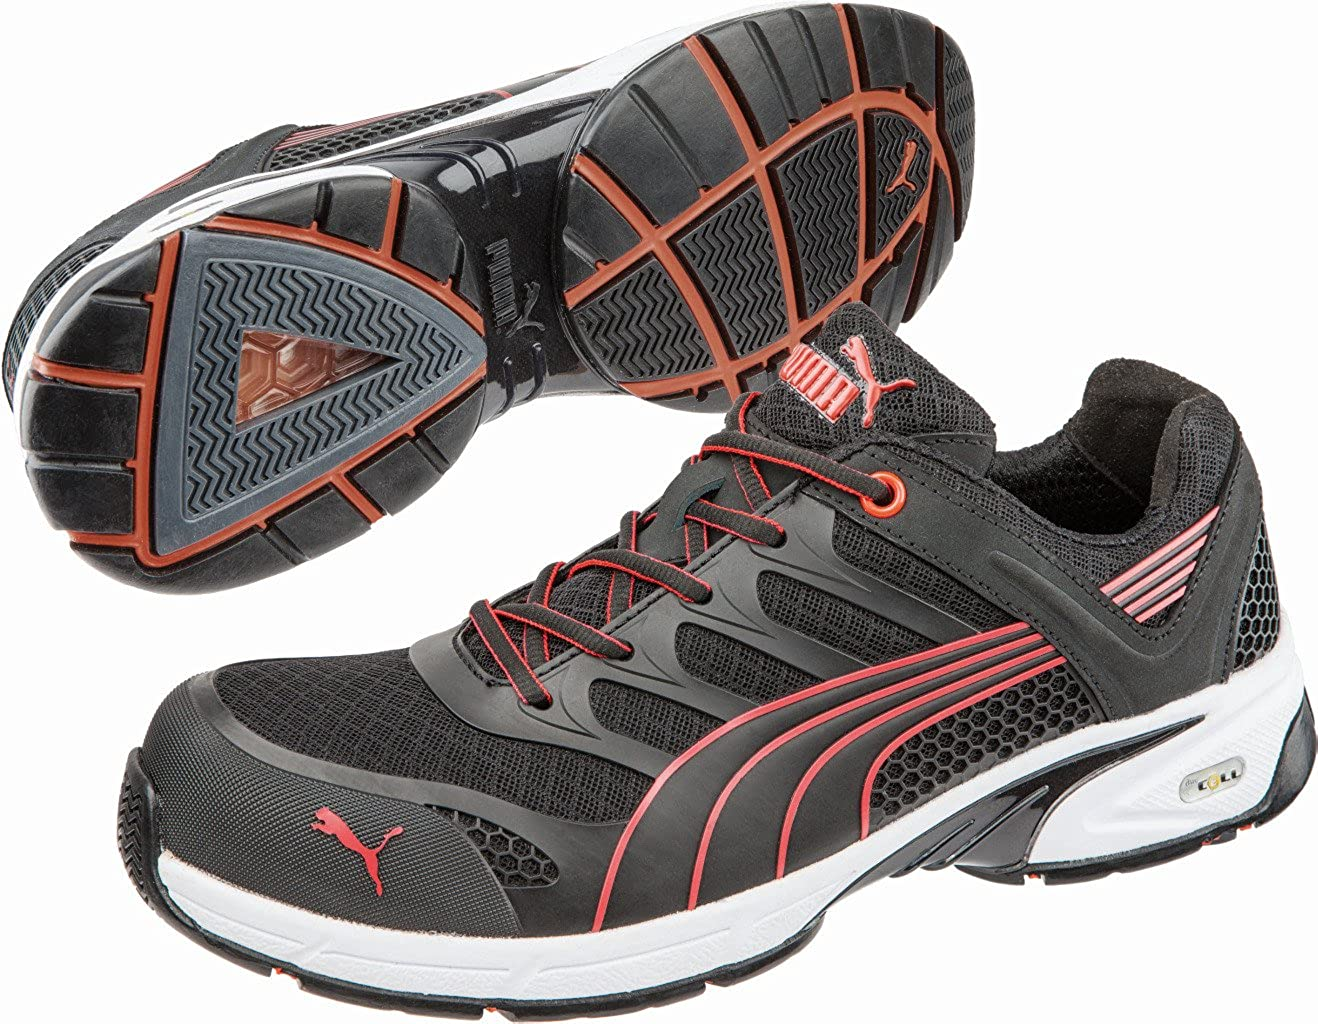 4e89afa6487f Men s Puma Safety Fuse Motion SD Low Safety Toe Shoes